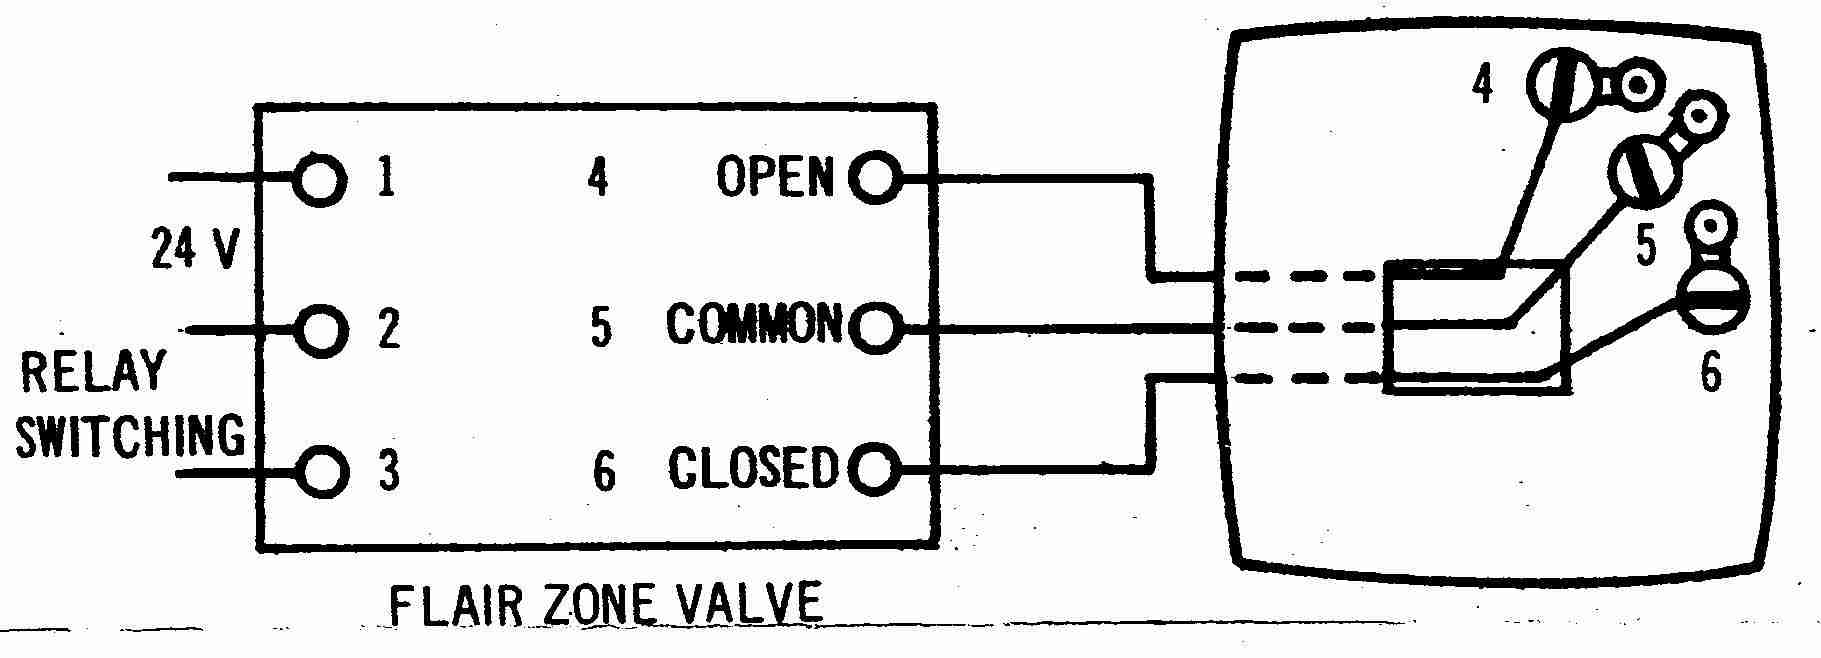 Room Thermostat Wiring Diagrams For Hvac Systems Up A Flair 3 Wire Controlling Zone Valve